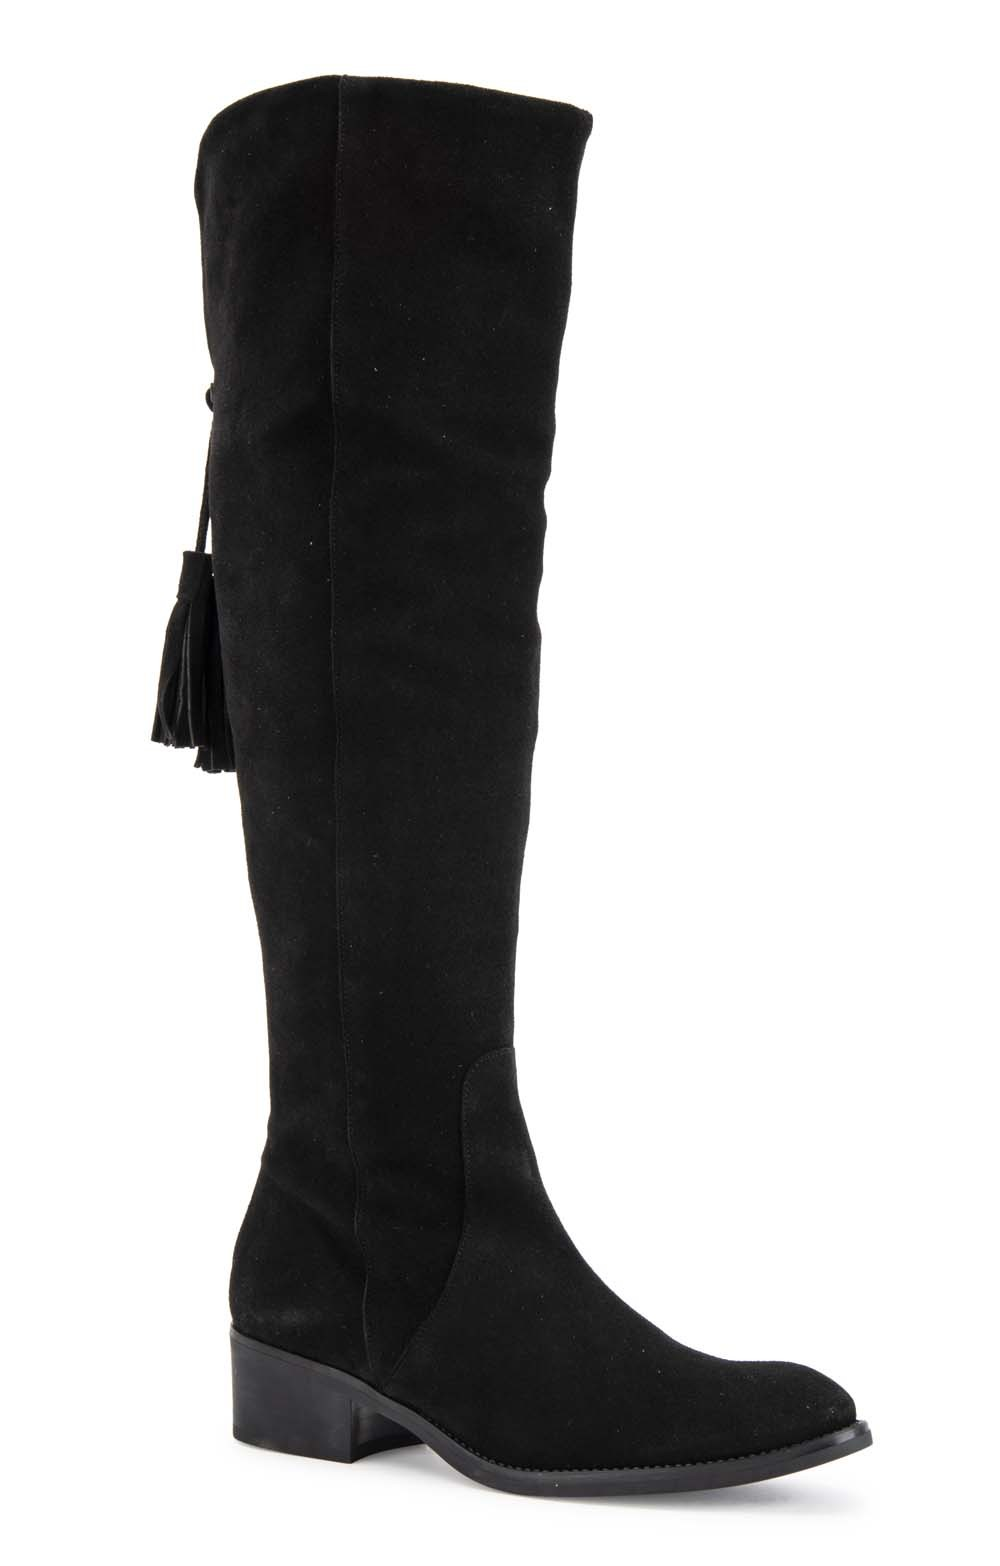 80a7e8d824f Tall Suede Boots with Tassel - House of Bruar